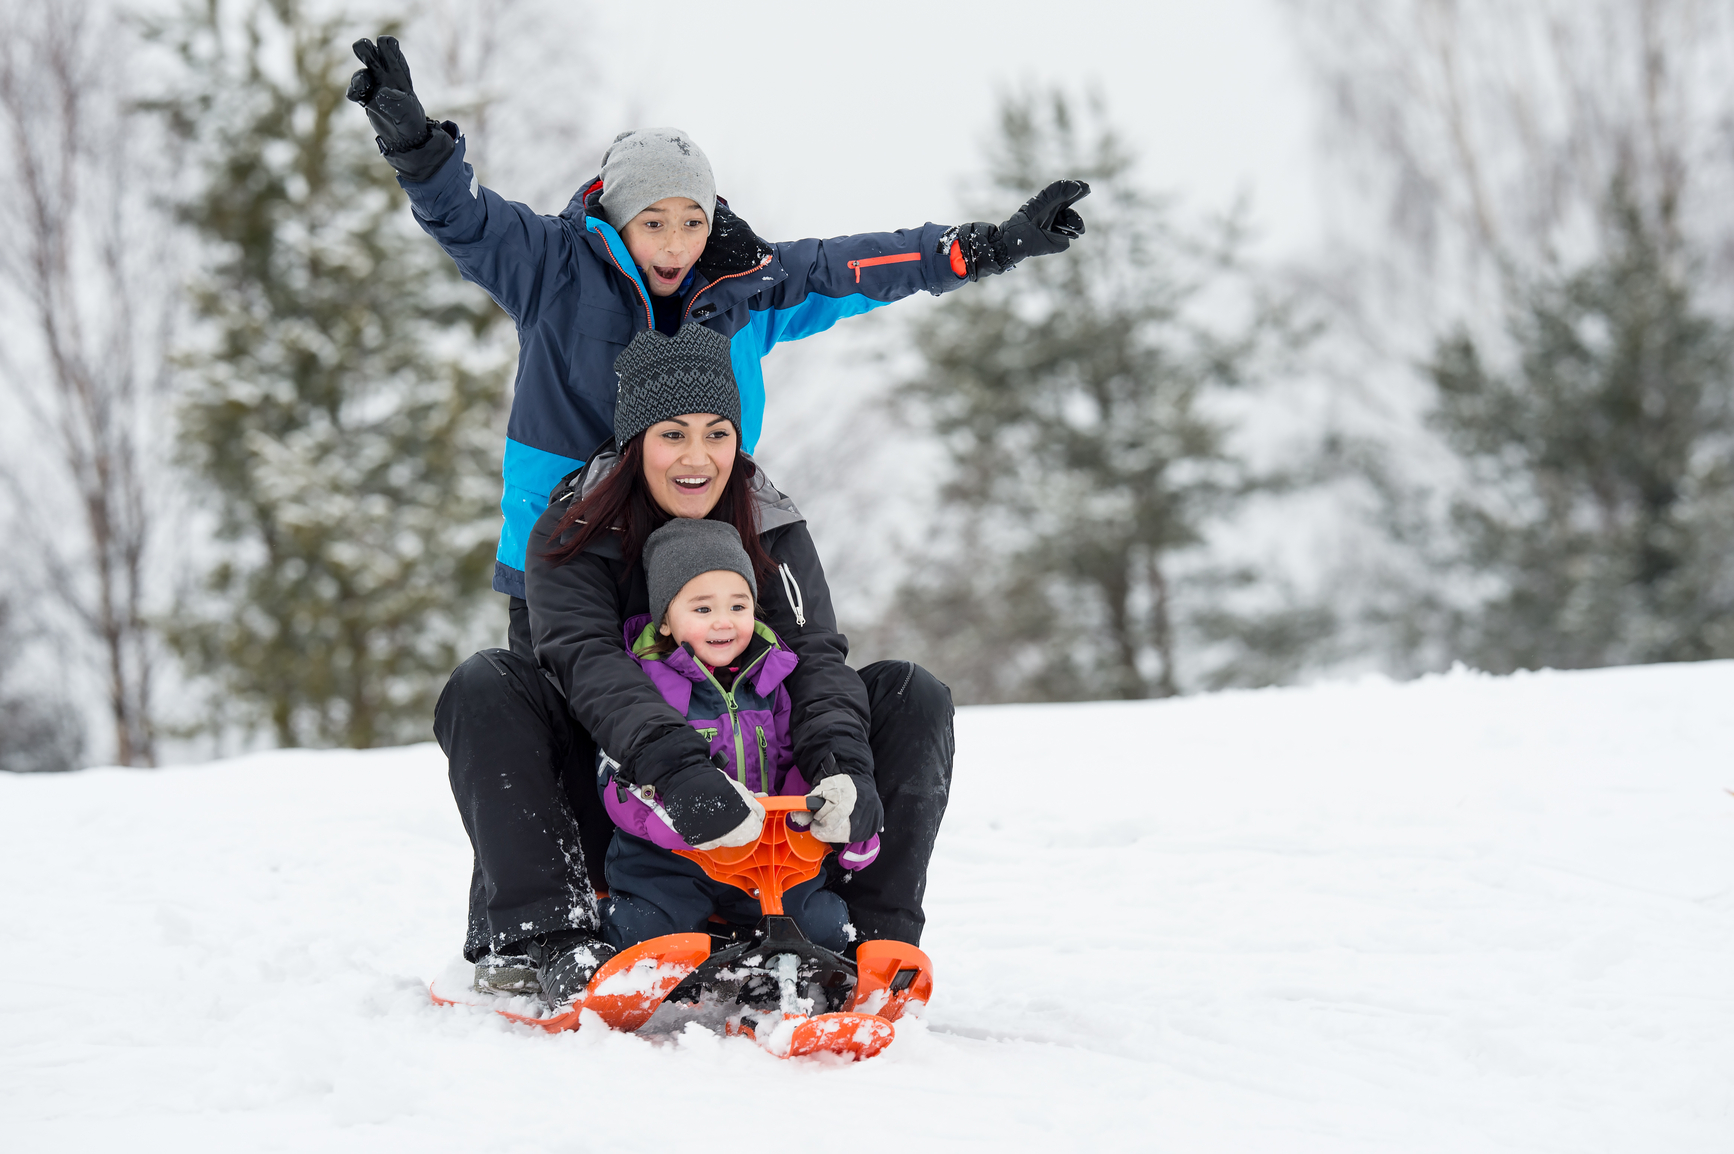 a mother having fun wiht her children in the winter